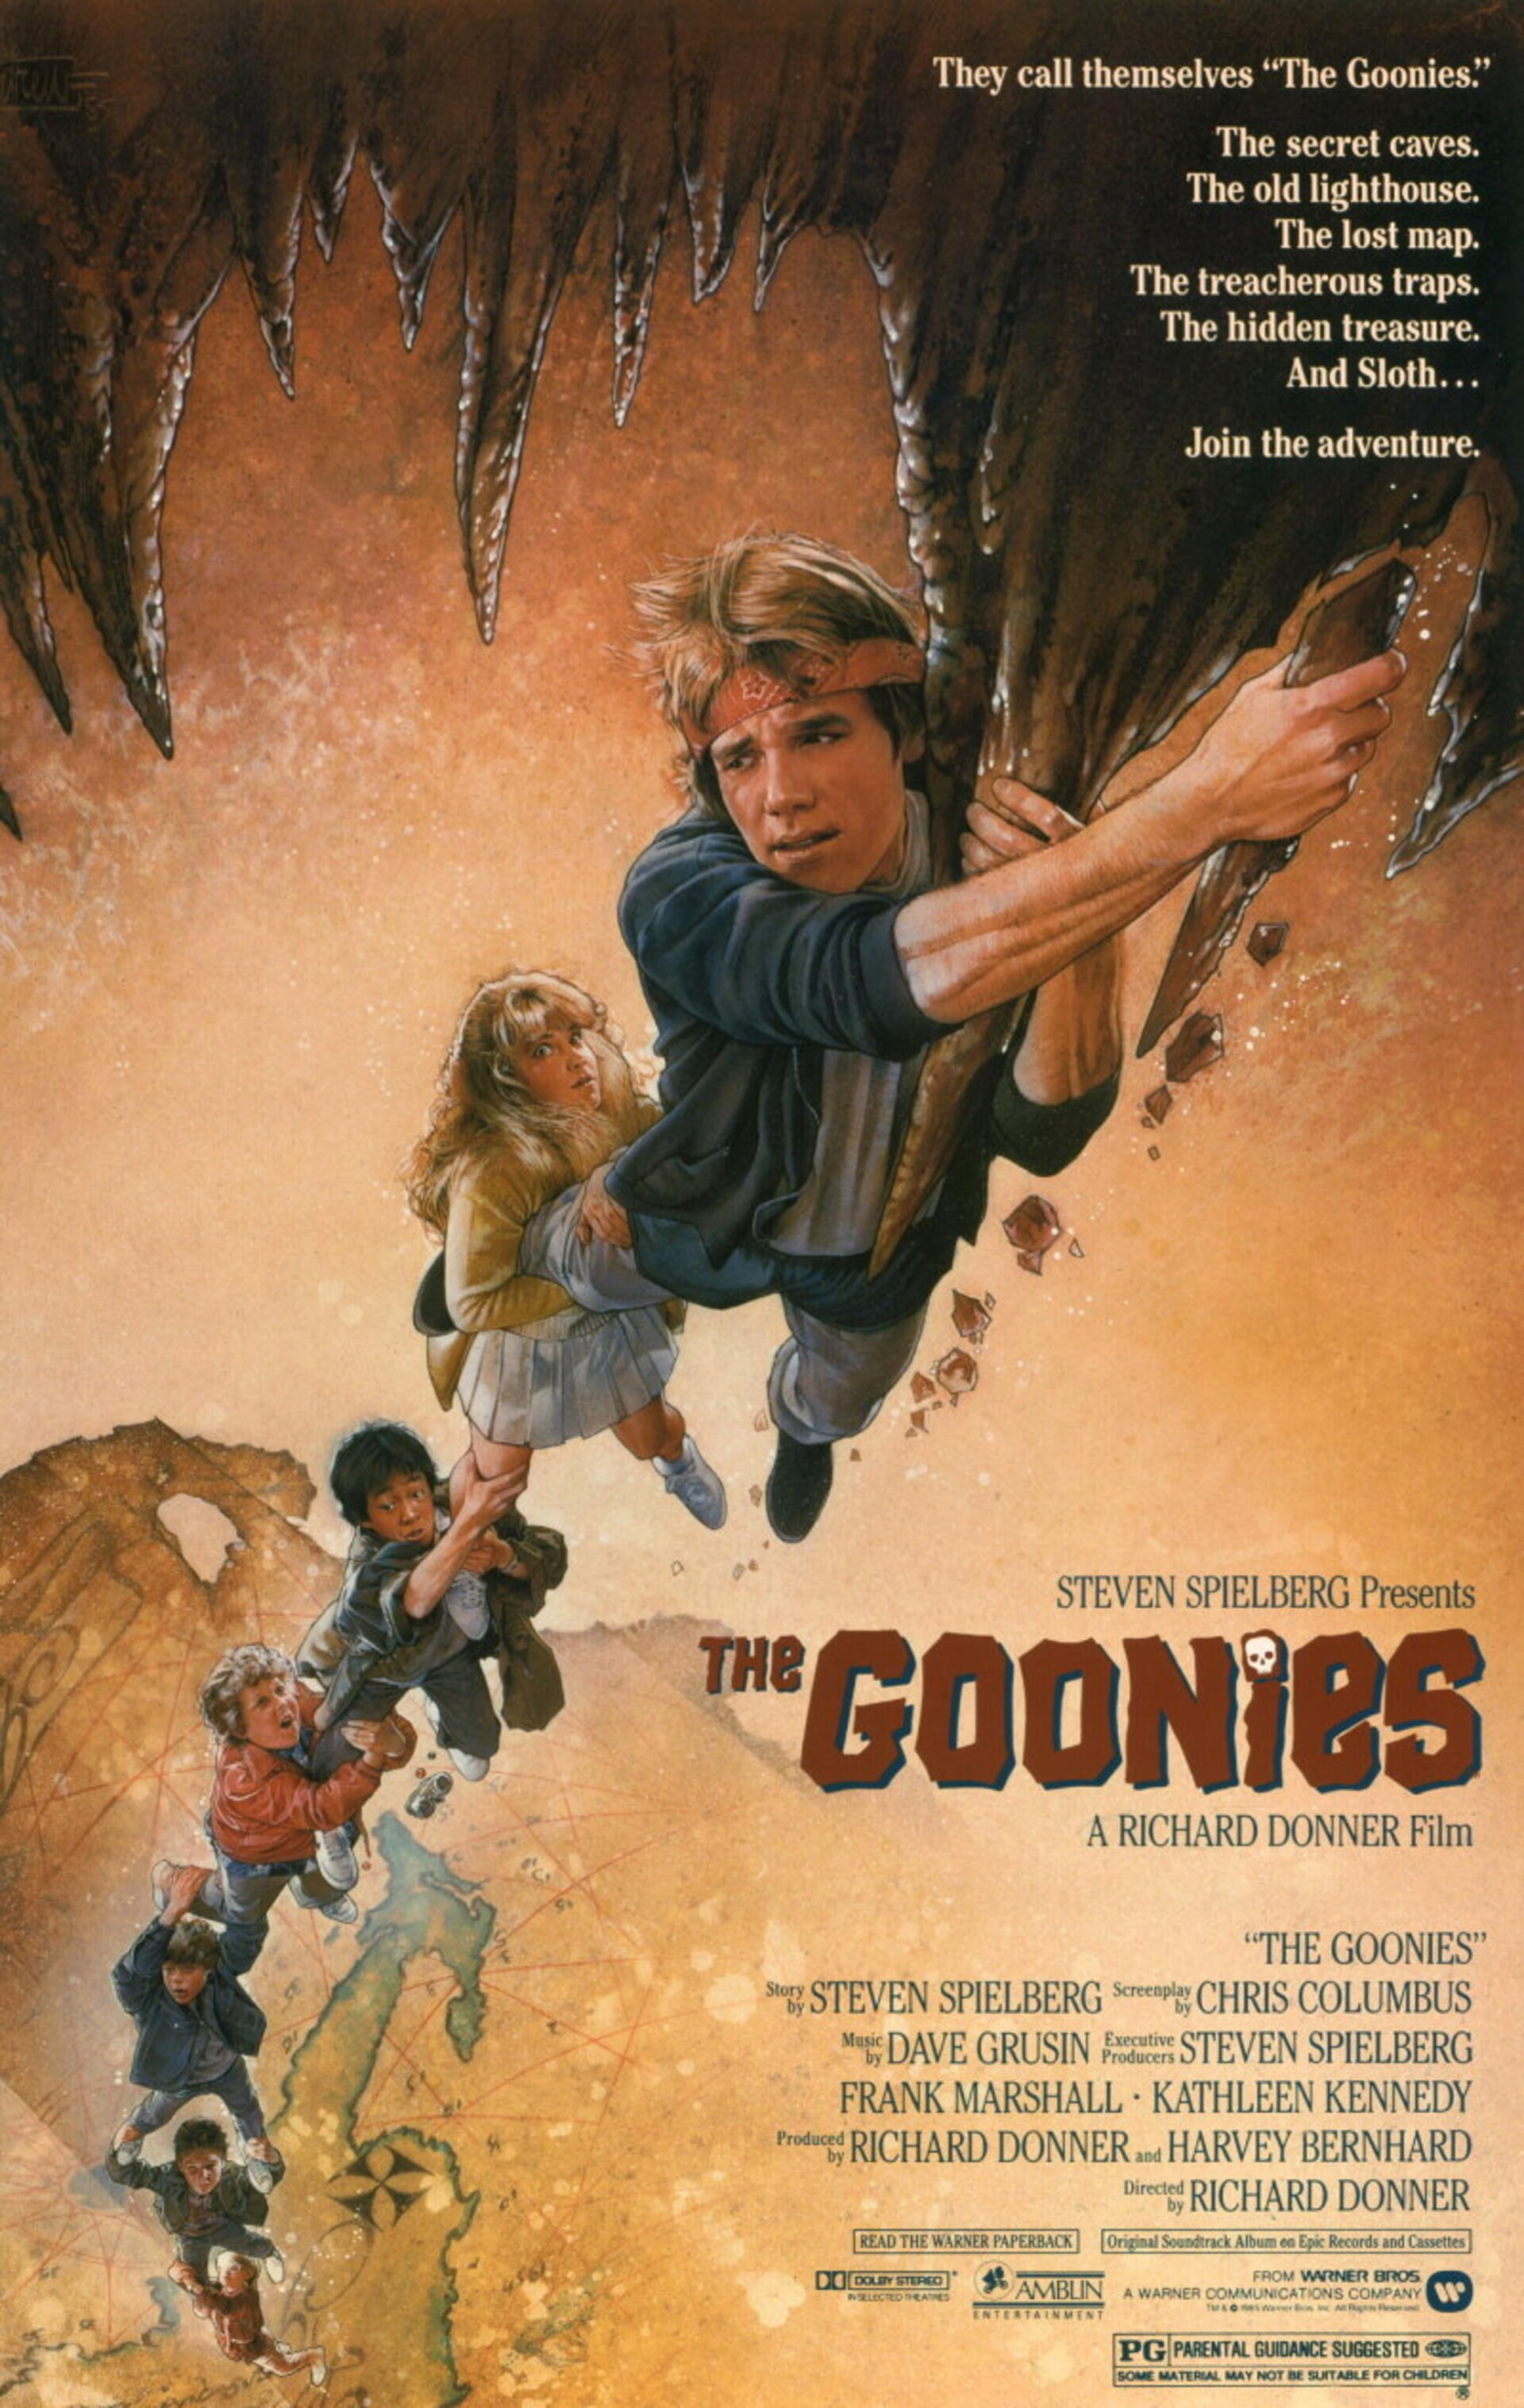 The Goonies - Poster 1